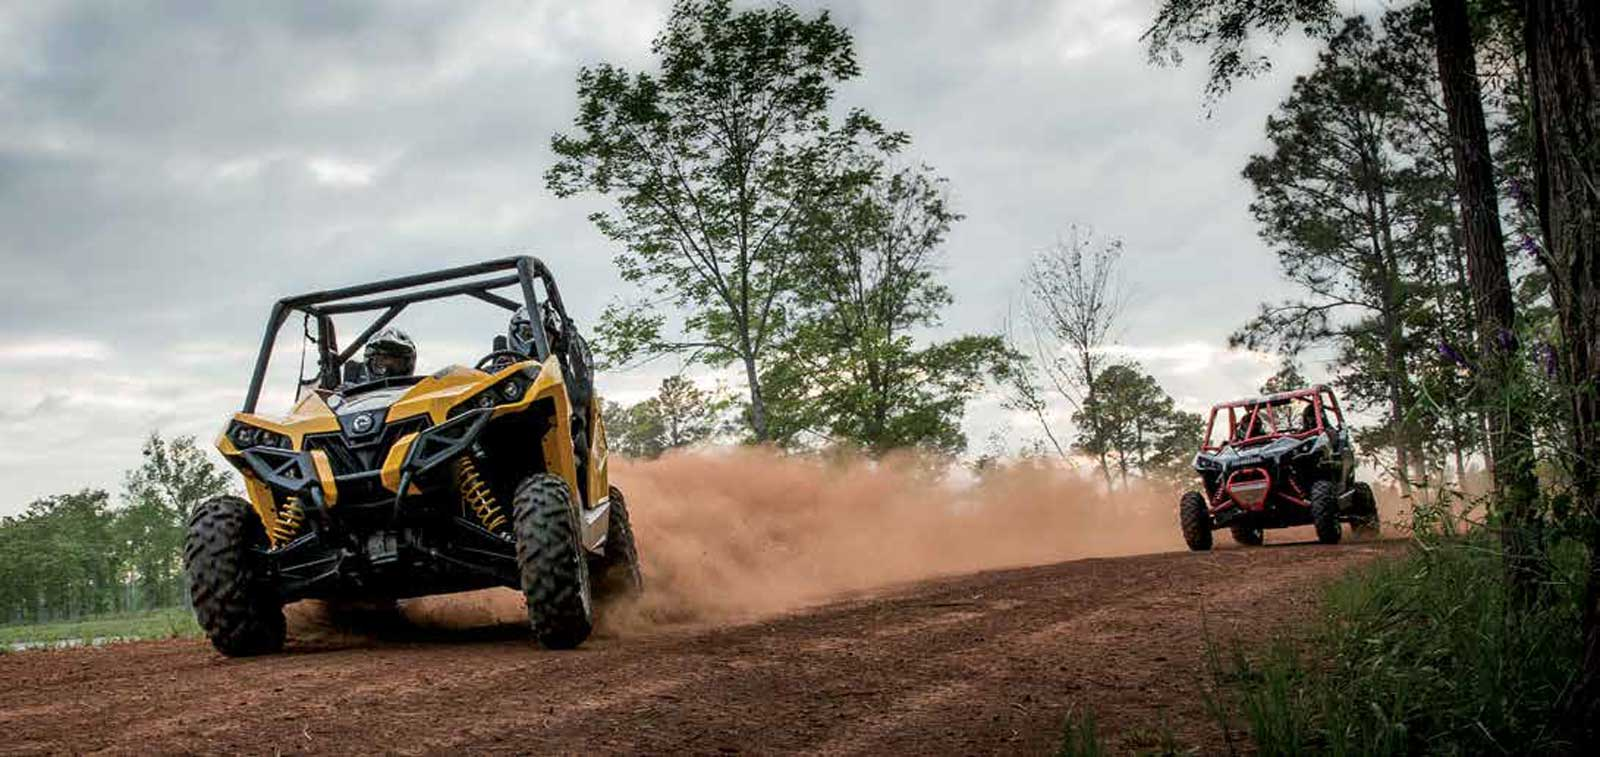 Can-am atv quad | Miete-RENT